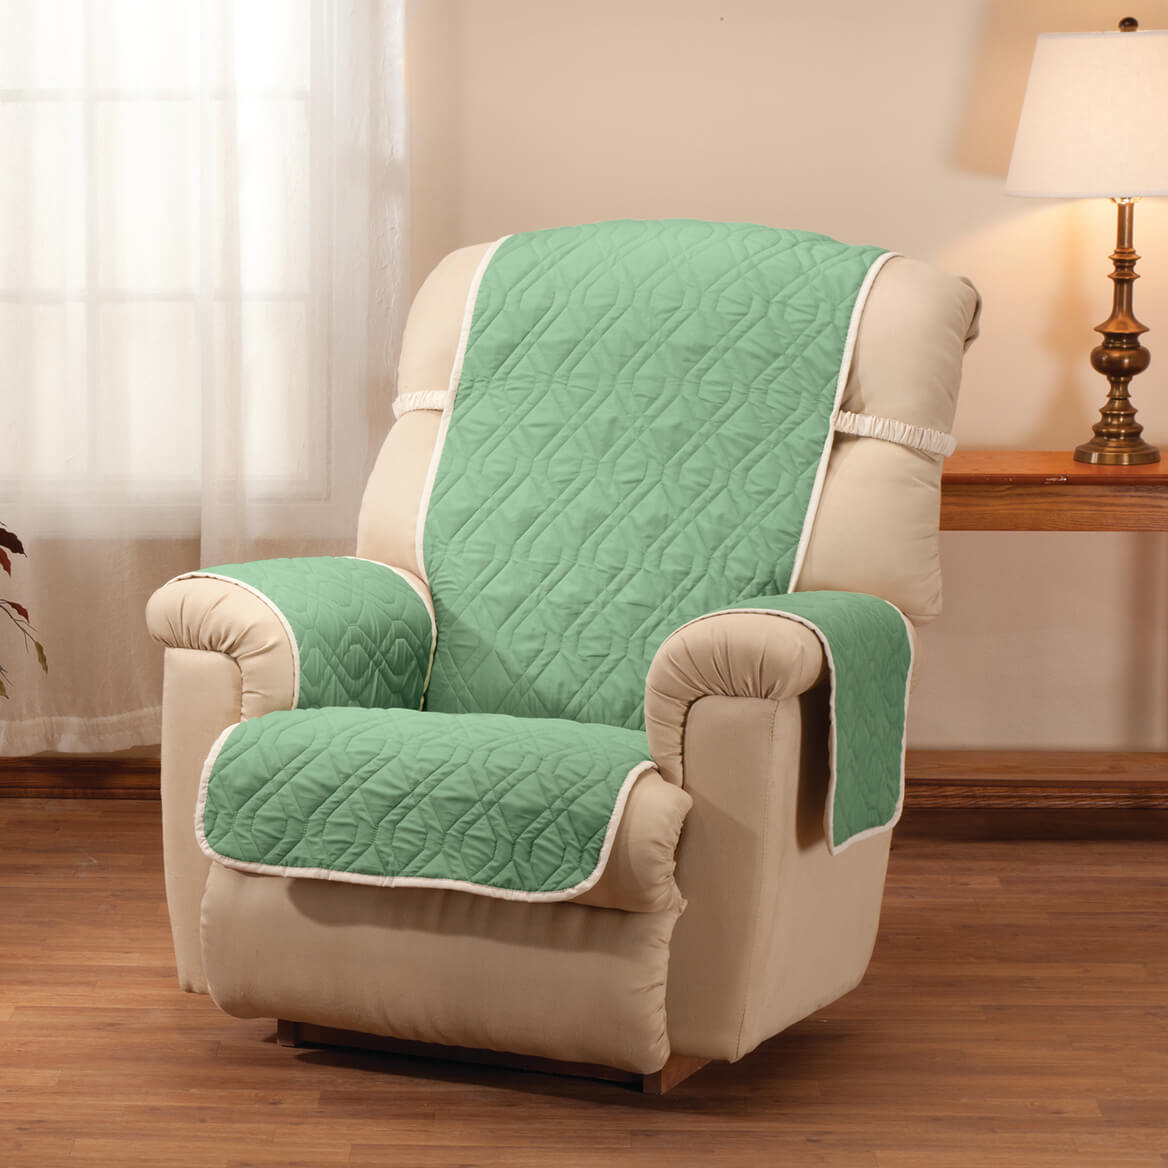 buy chair covers cheap steel transport deluxe reversible waterproof recliner cover miles